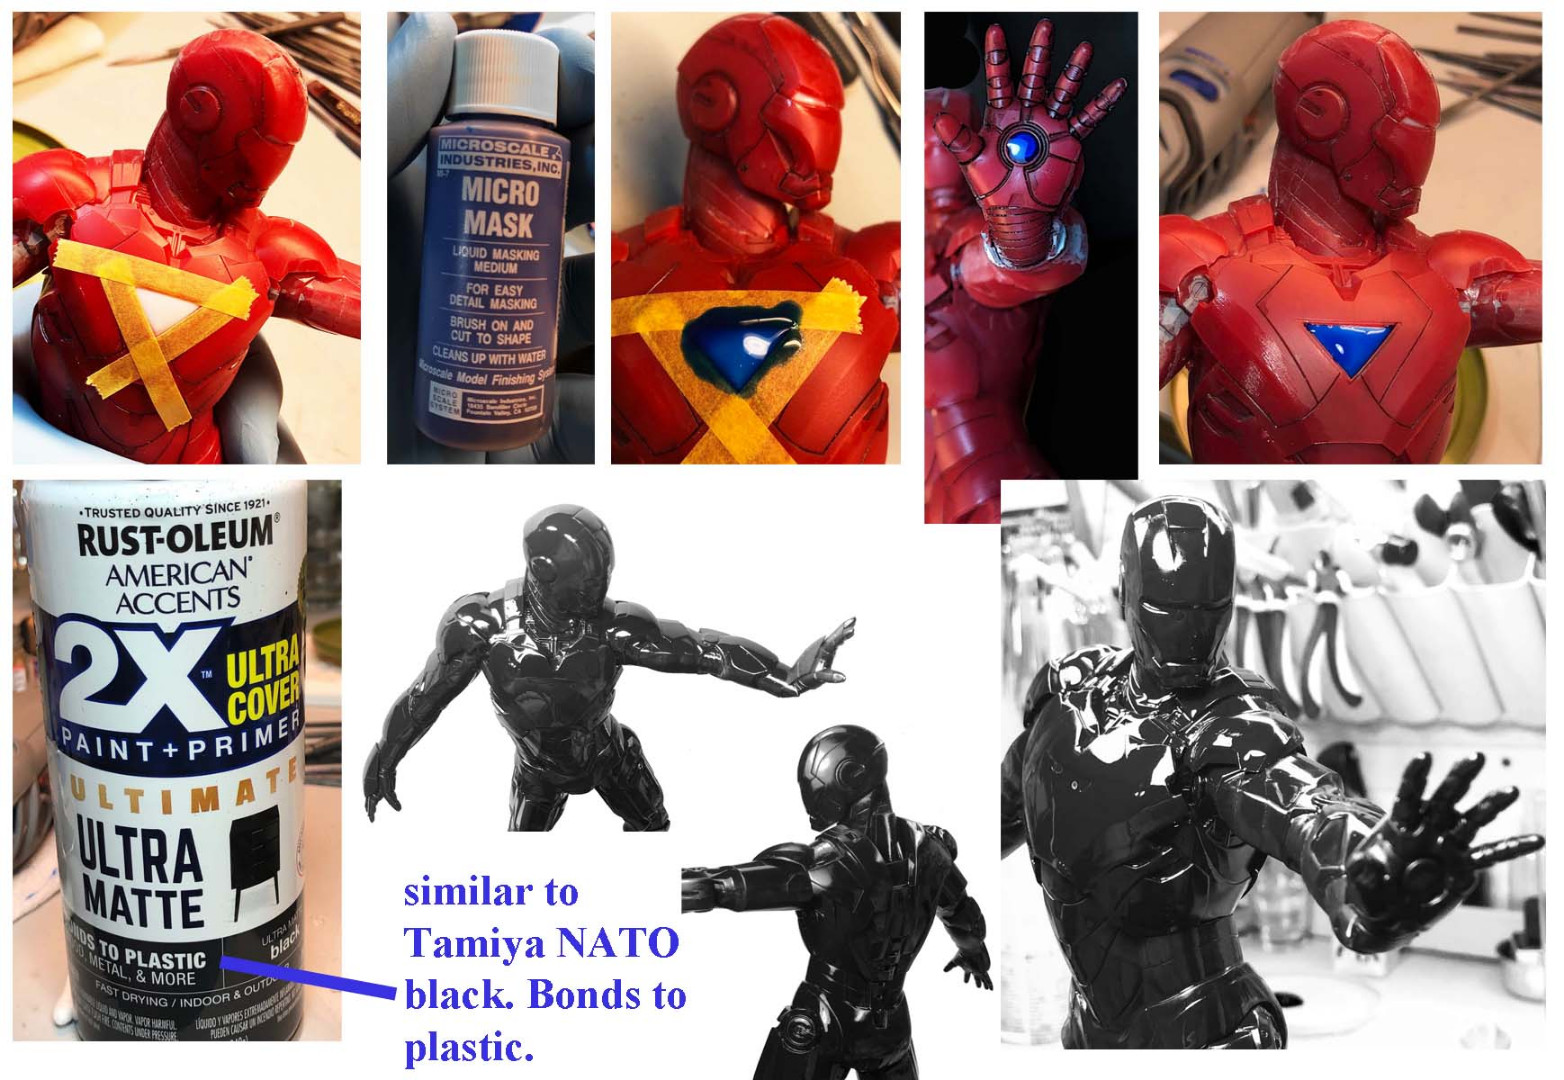 iron man primer coat.jpg